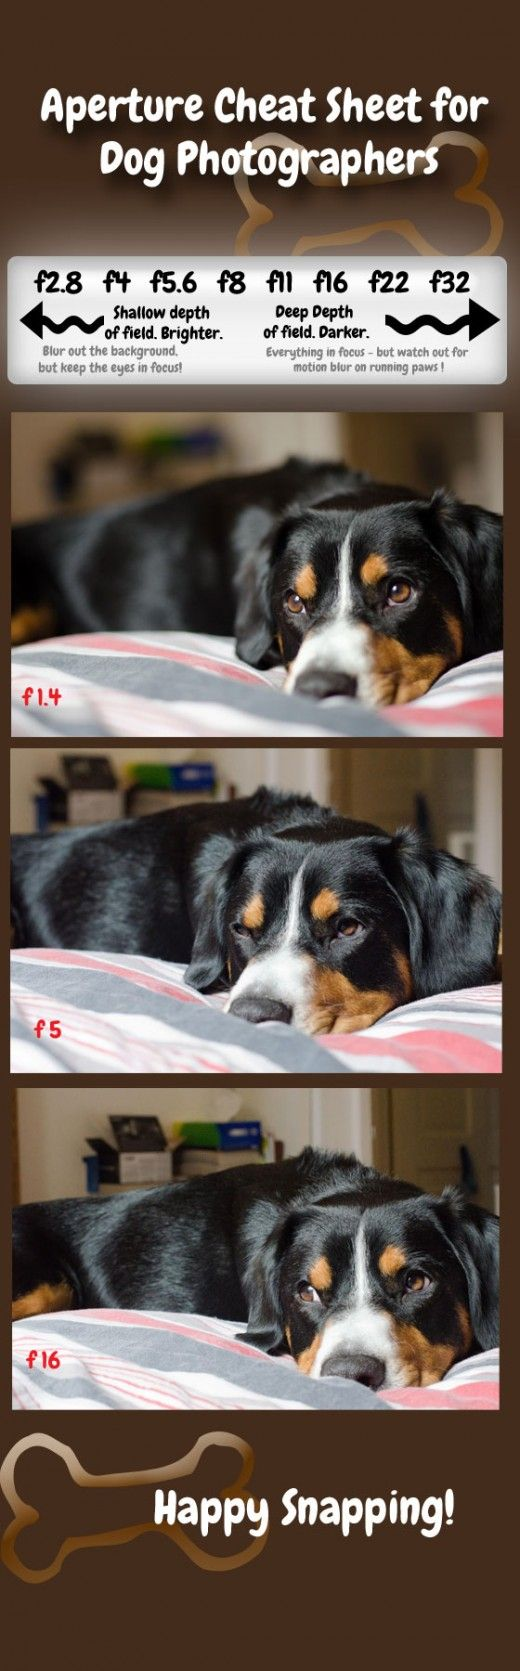 How to Photograph Dogs: What is Aperture and How can it Improve your Pet Photos? – Molly Conway